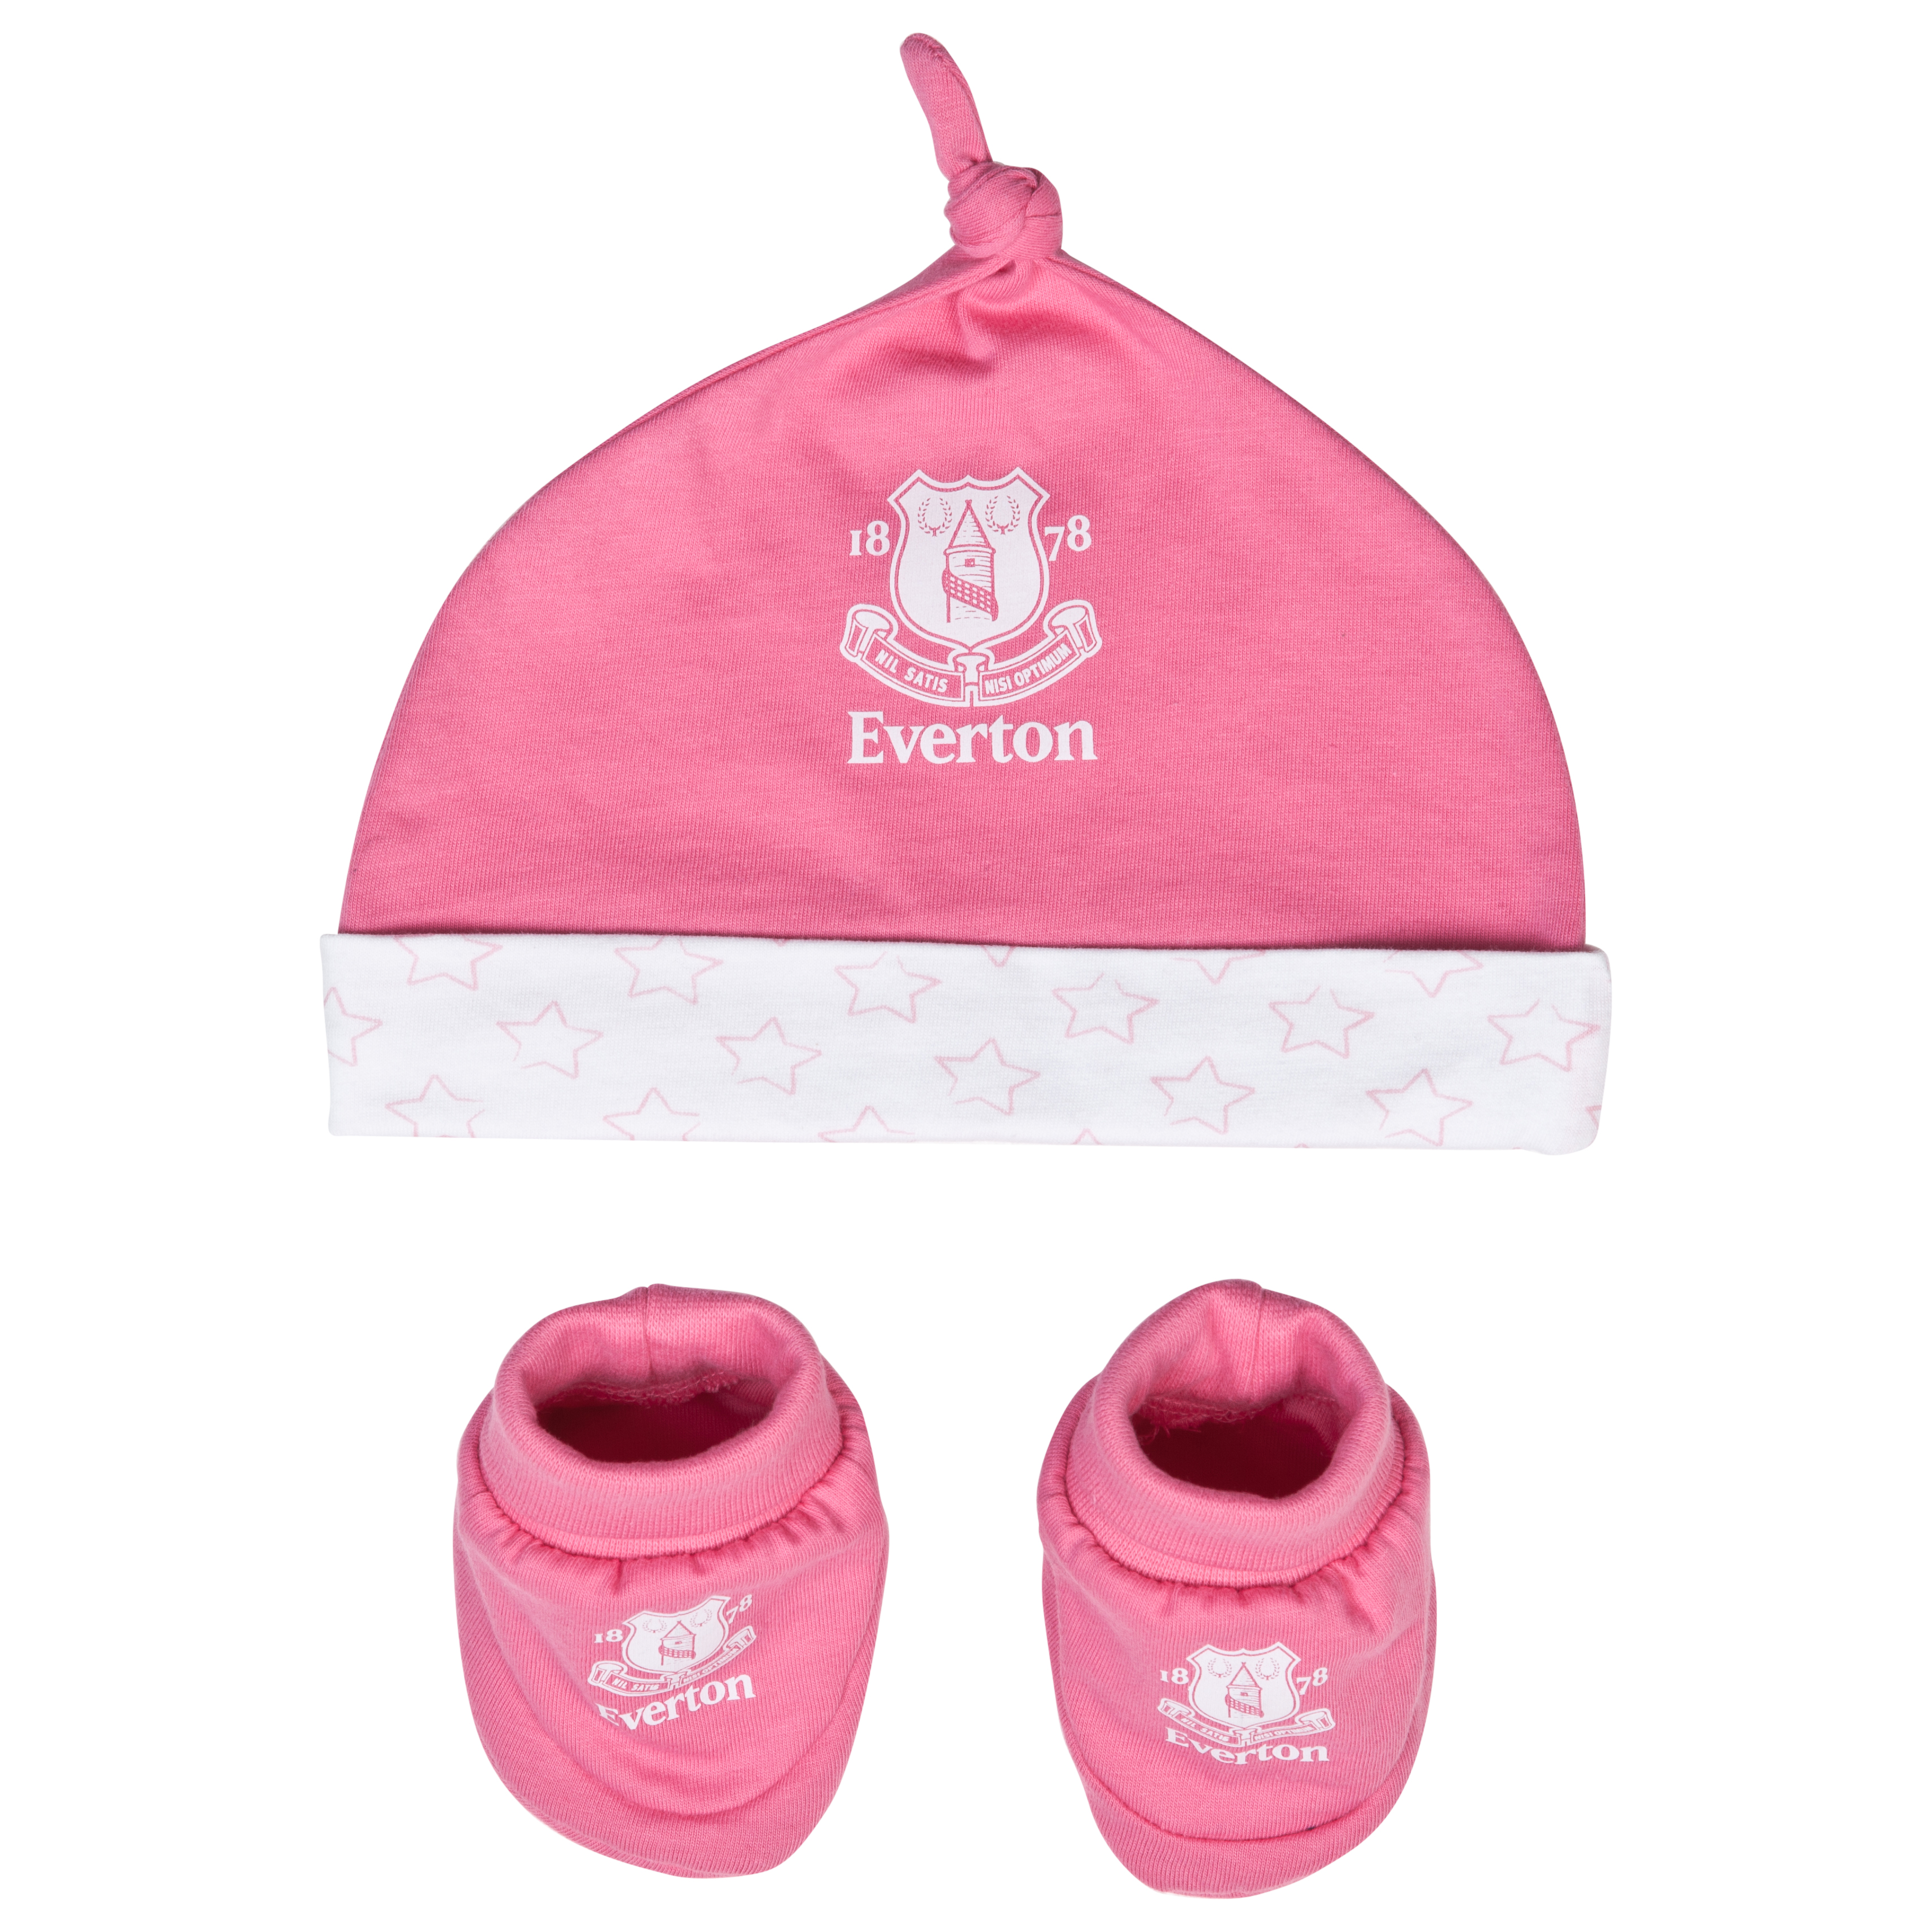 Everton Crest Hat and Booties - Pink/White - Baby